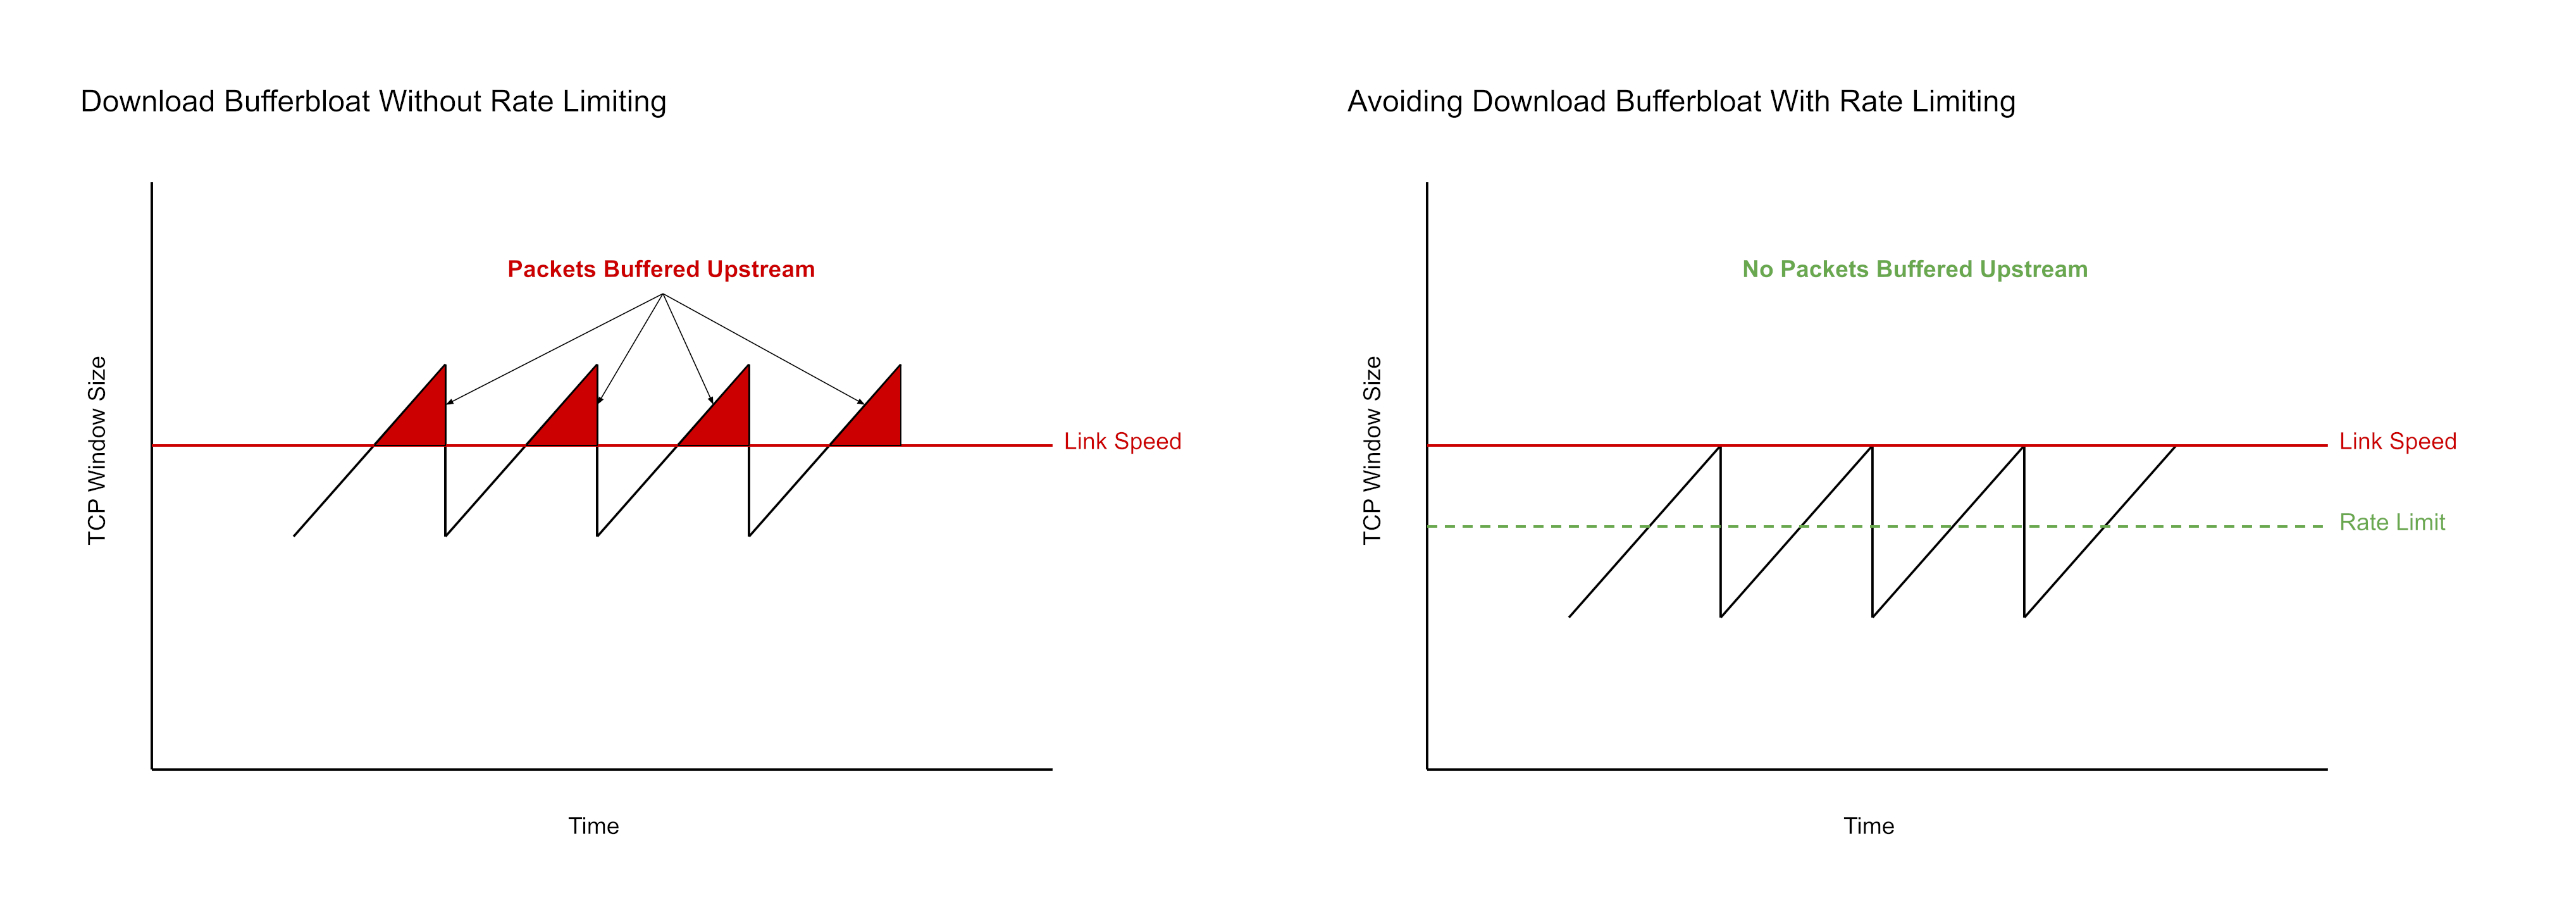 Download Bufferbloat and Rate Limiting Diagram